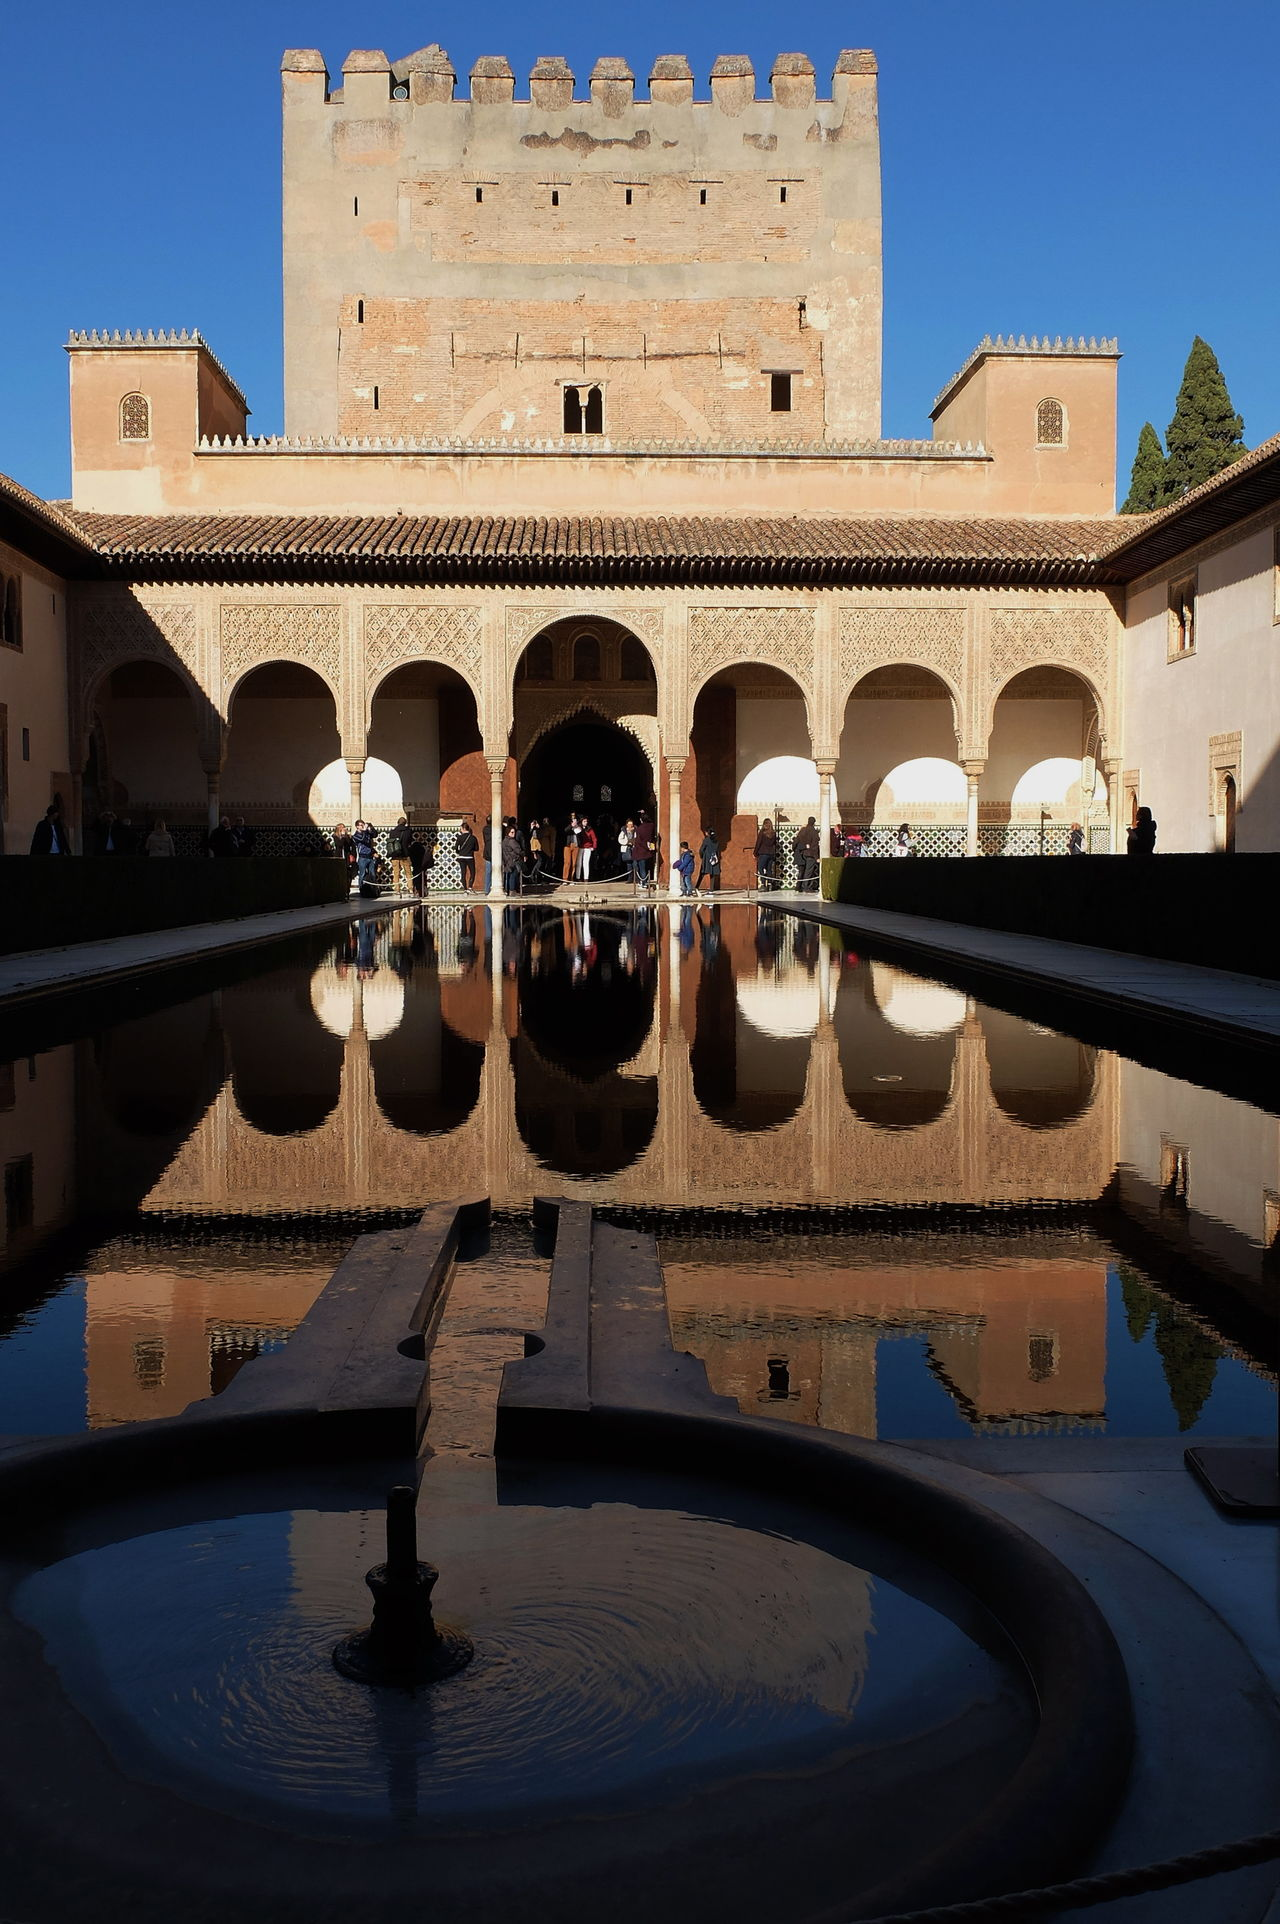 nirror lake Alhambra Alhambra De Granada  Architecture Arts Culture And Entertainment Building Exterior Built Structure City Cultures Day History Mirror Lake Mirrror No People Reflection Sky Travel Travel Destinations Vacations Water